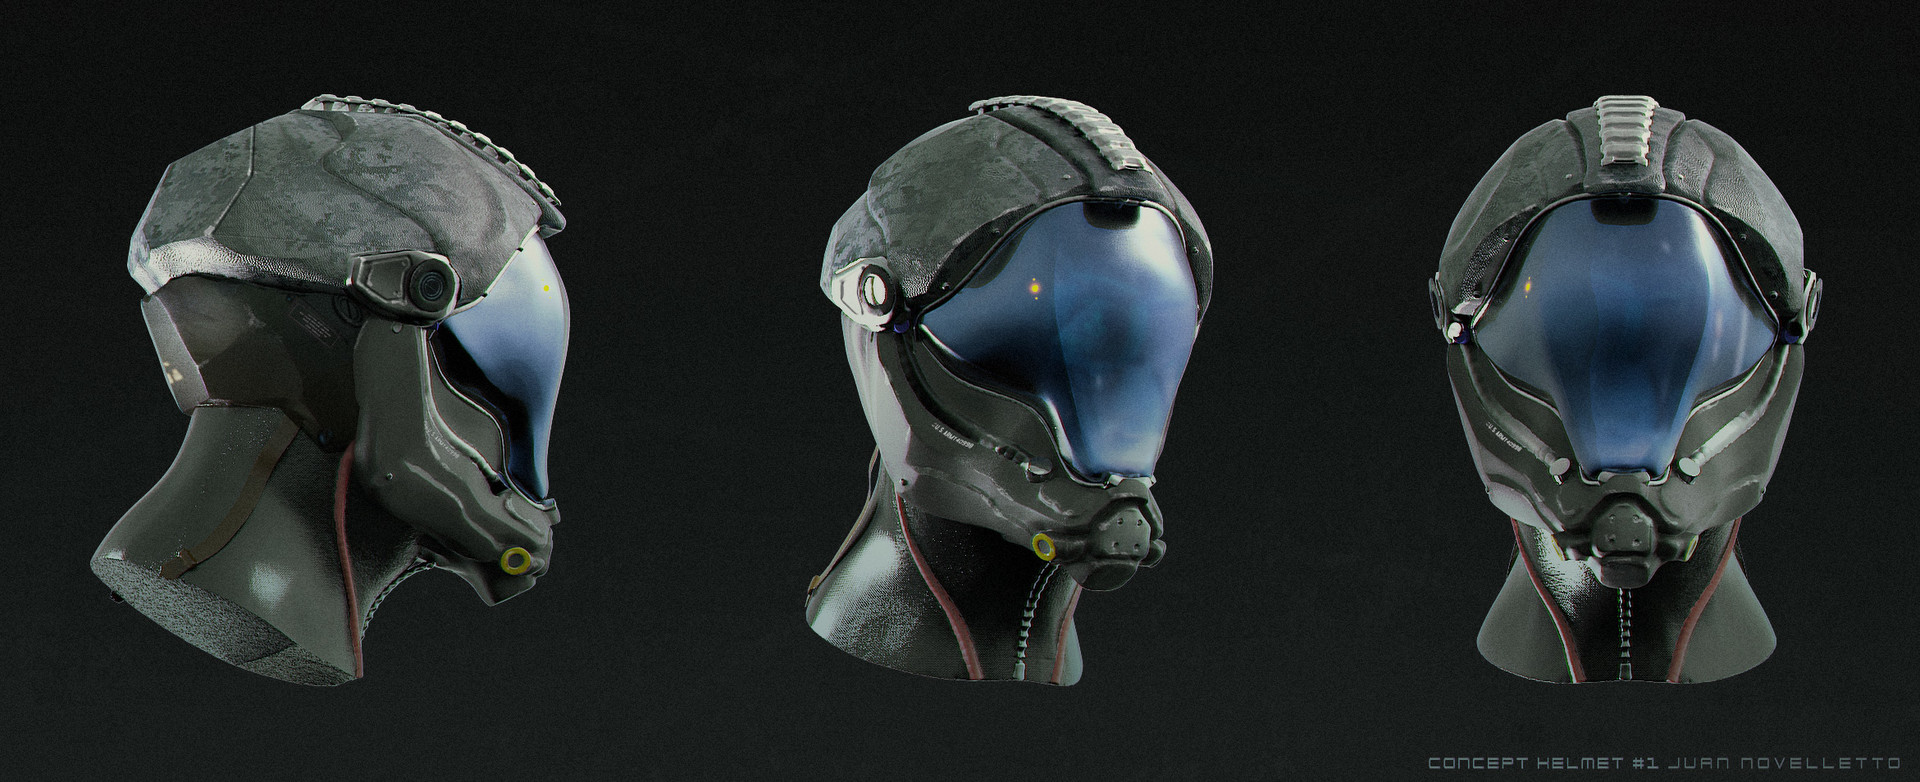 Juan novelletto sci fi helmet design for Sci fi decor